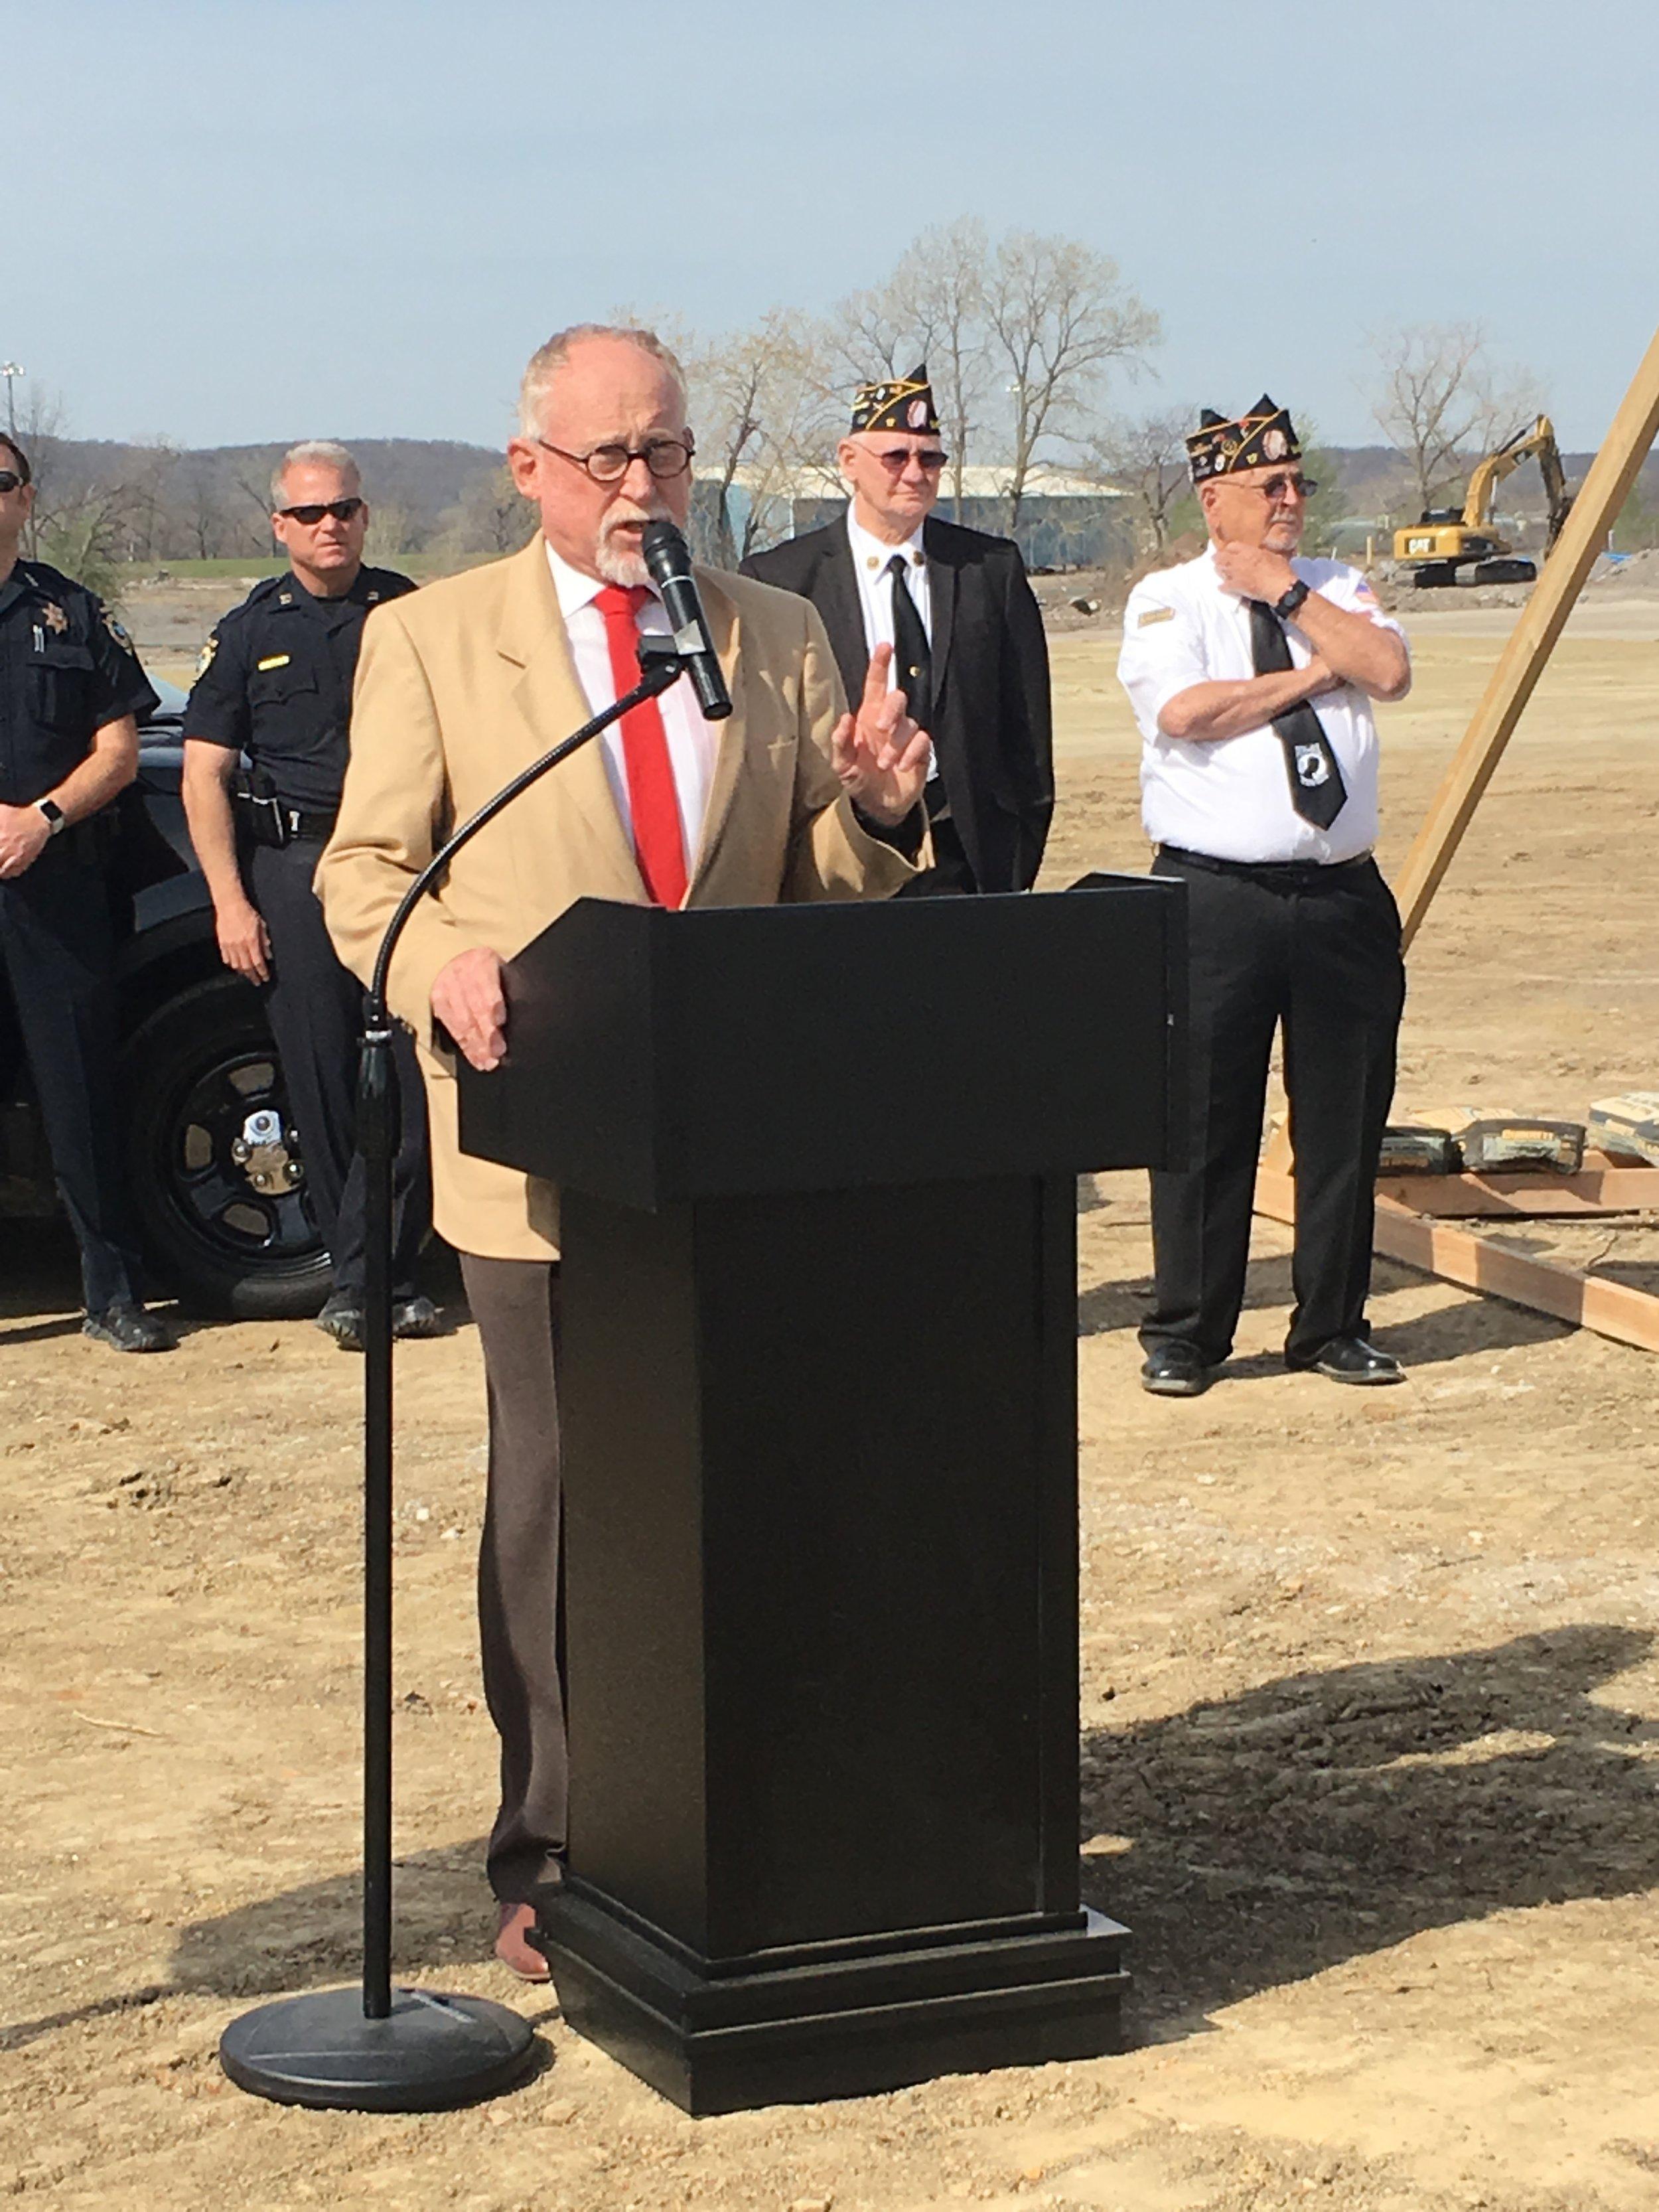 Mayor Mike Burdge speaks at the new Billie A. Hall Public Safety Center ground-breaking ceremony.